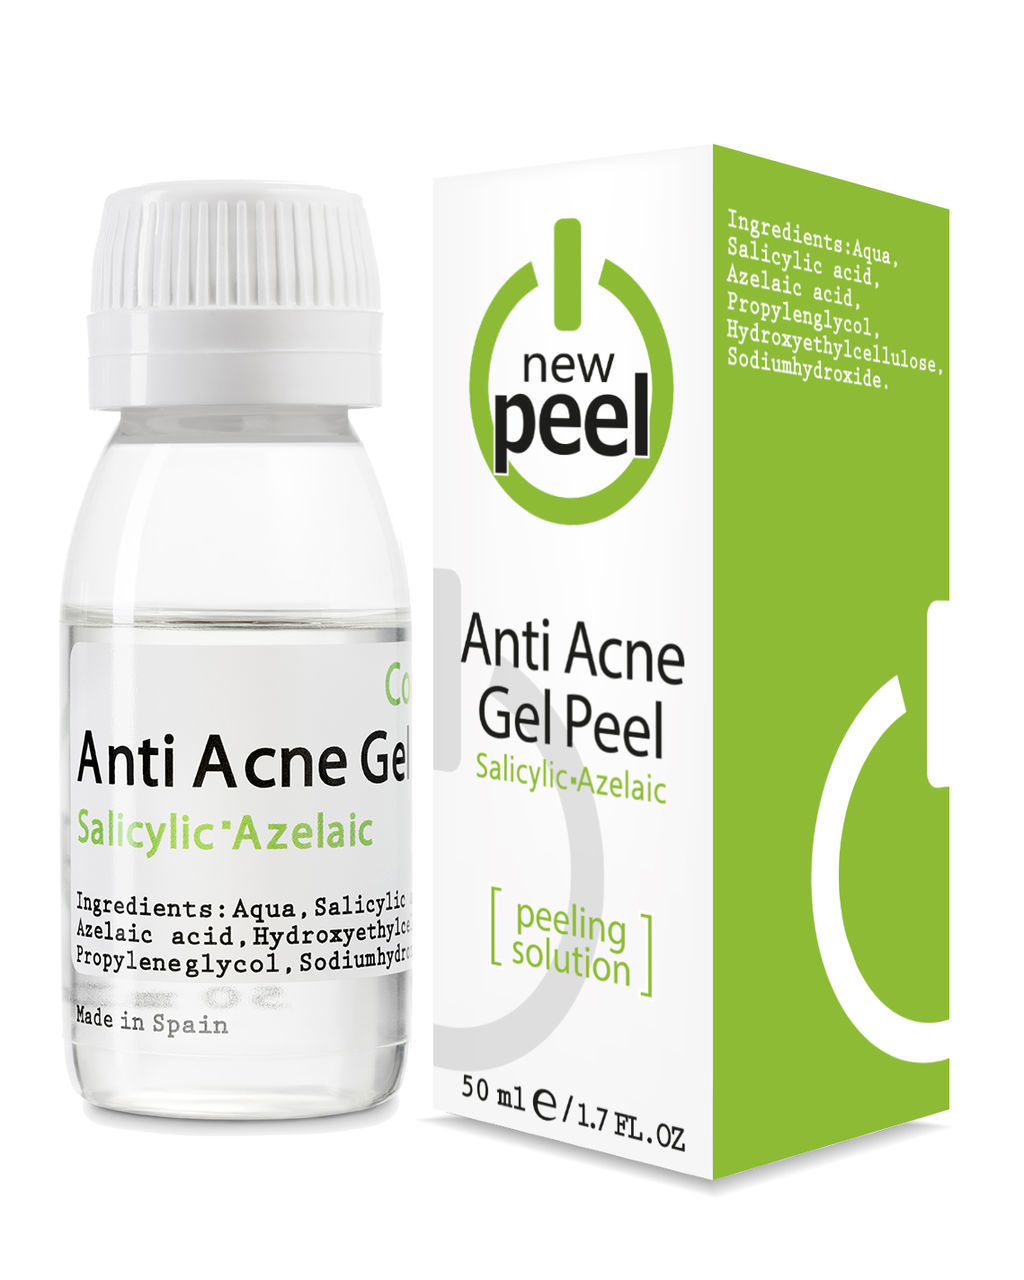 Анти-акне пилинг / NEW PEEL Anti-Acne Peel, 50 ml